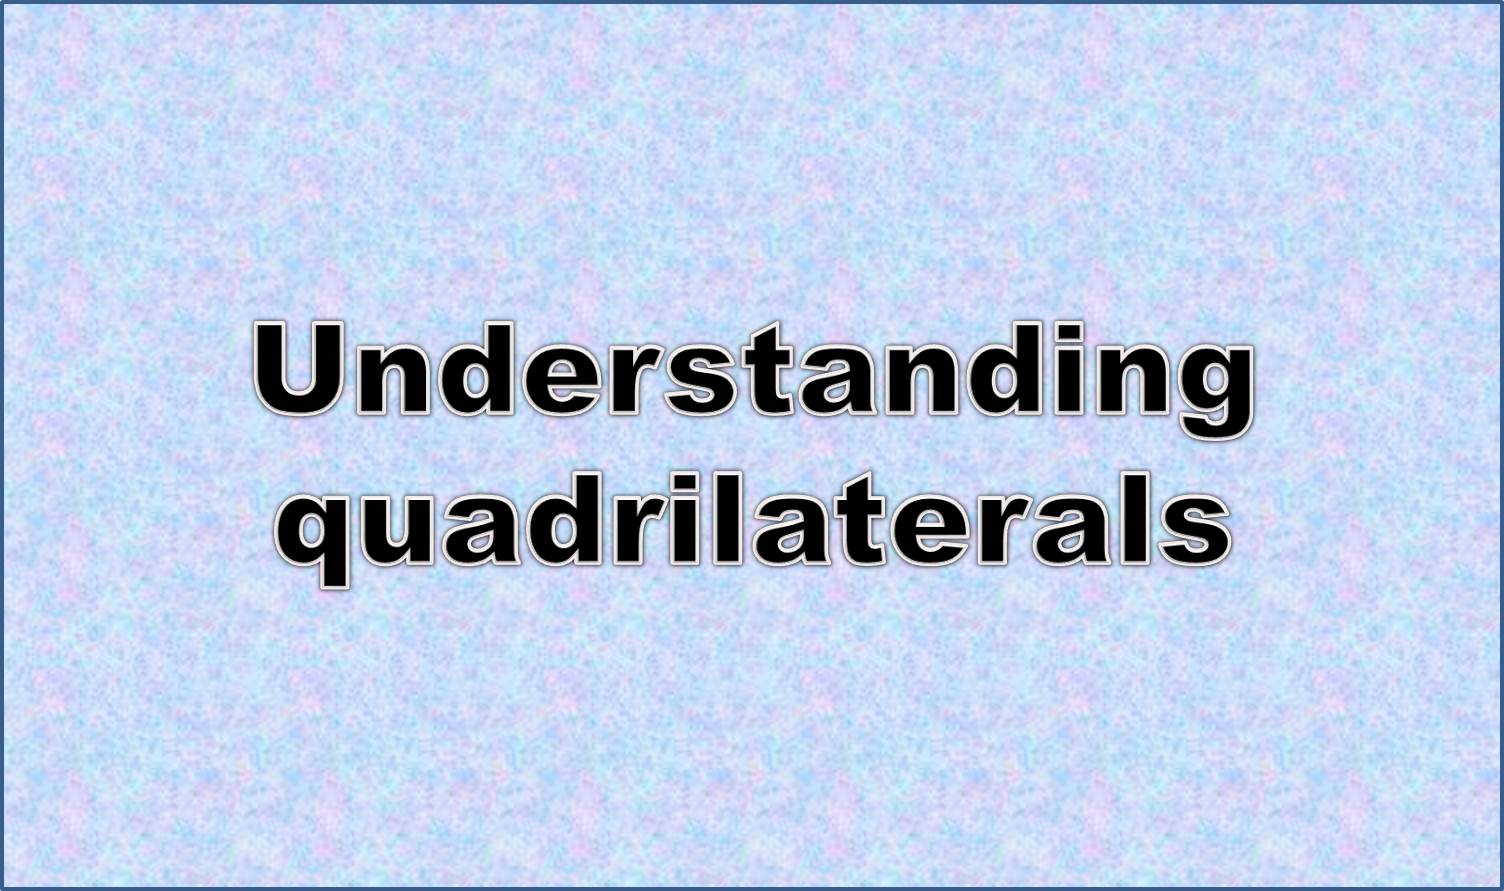 http://study.aisectonline.com/images/Intro to quadrilaterals.jpg